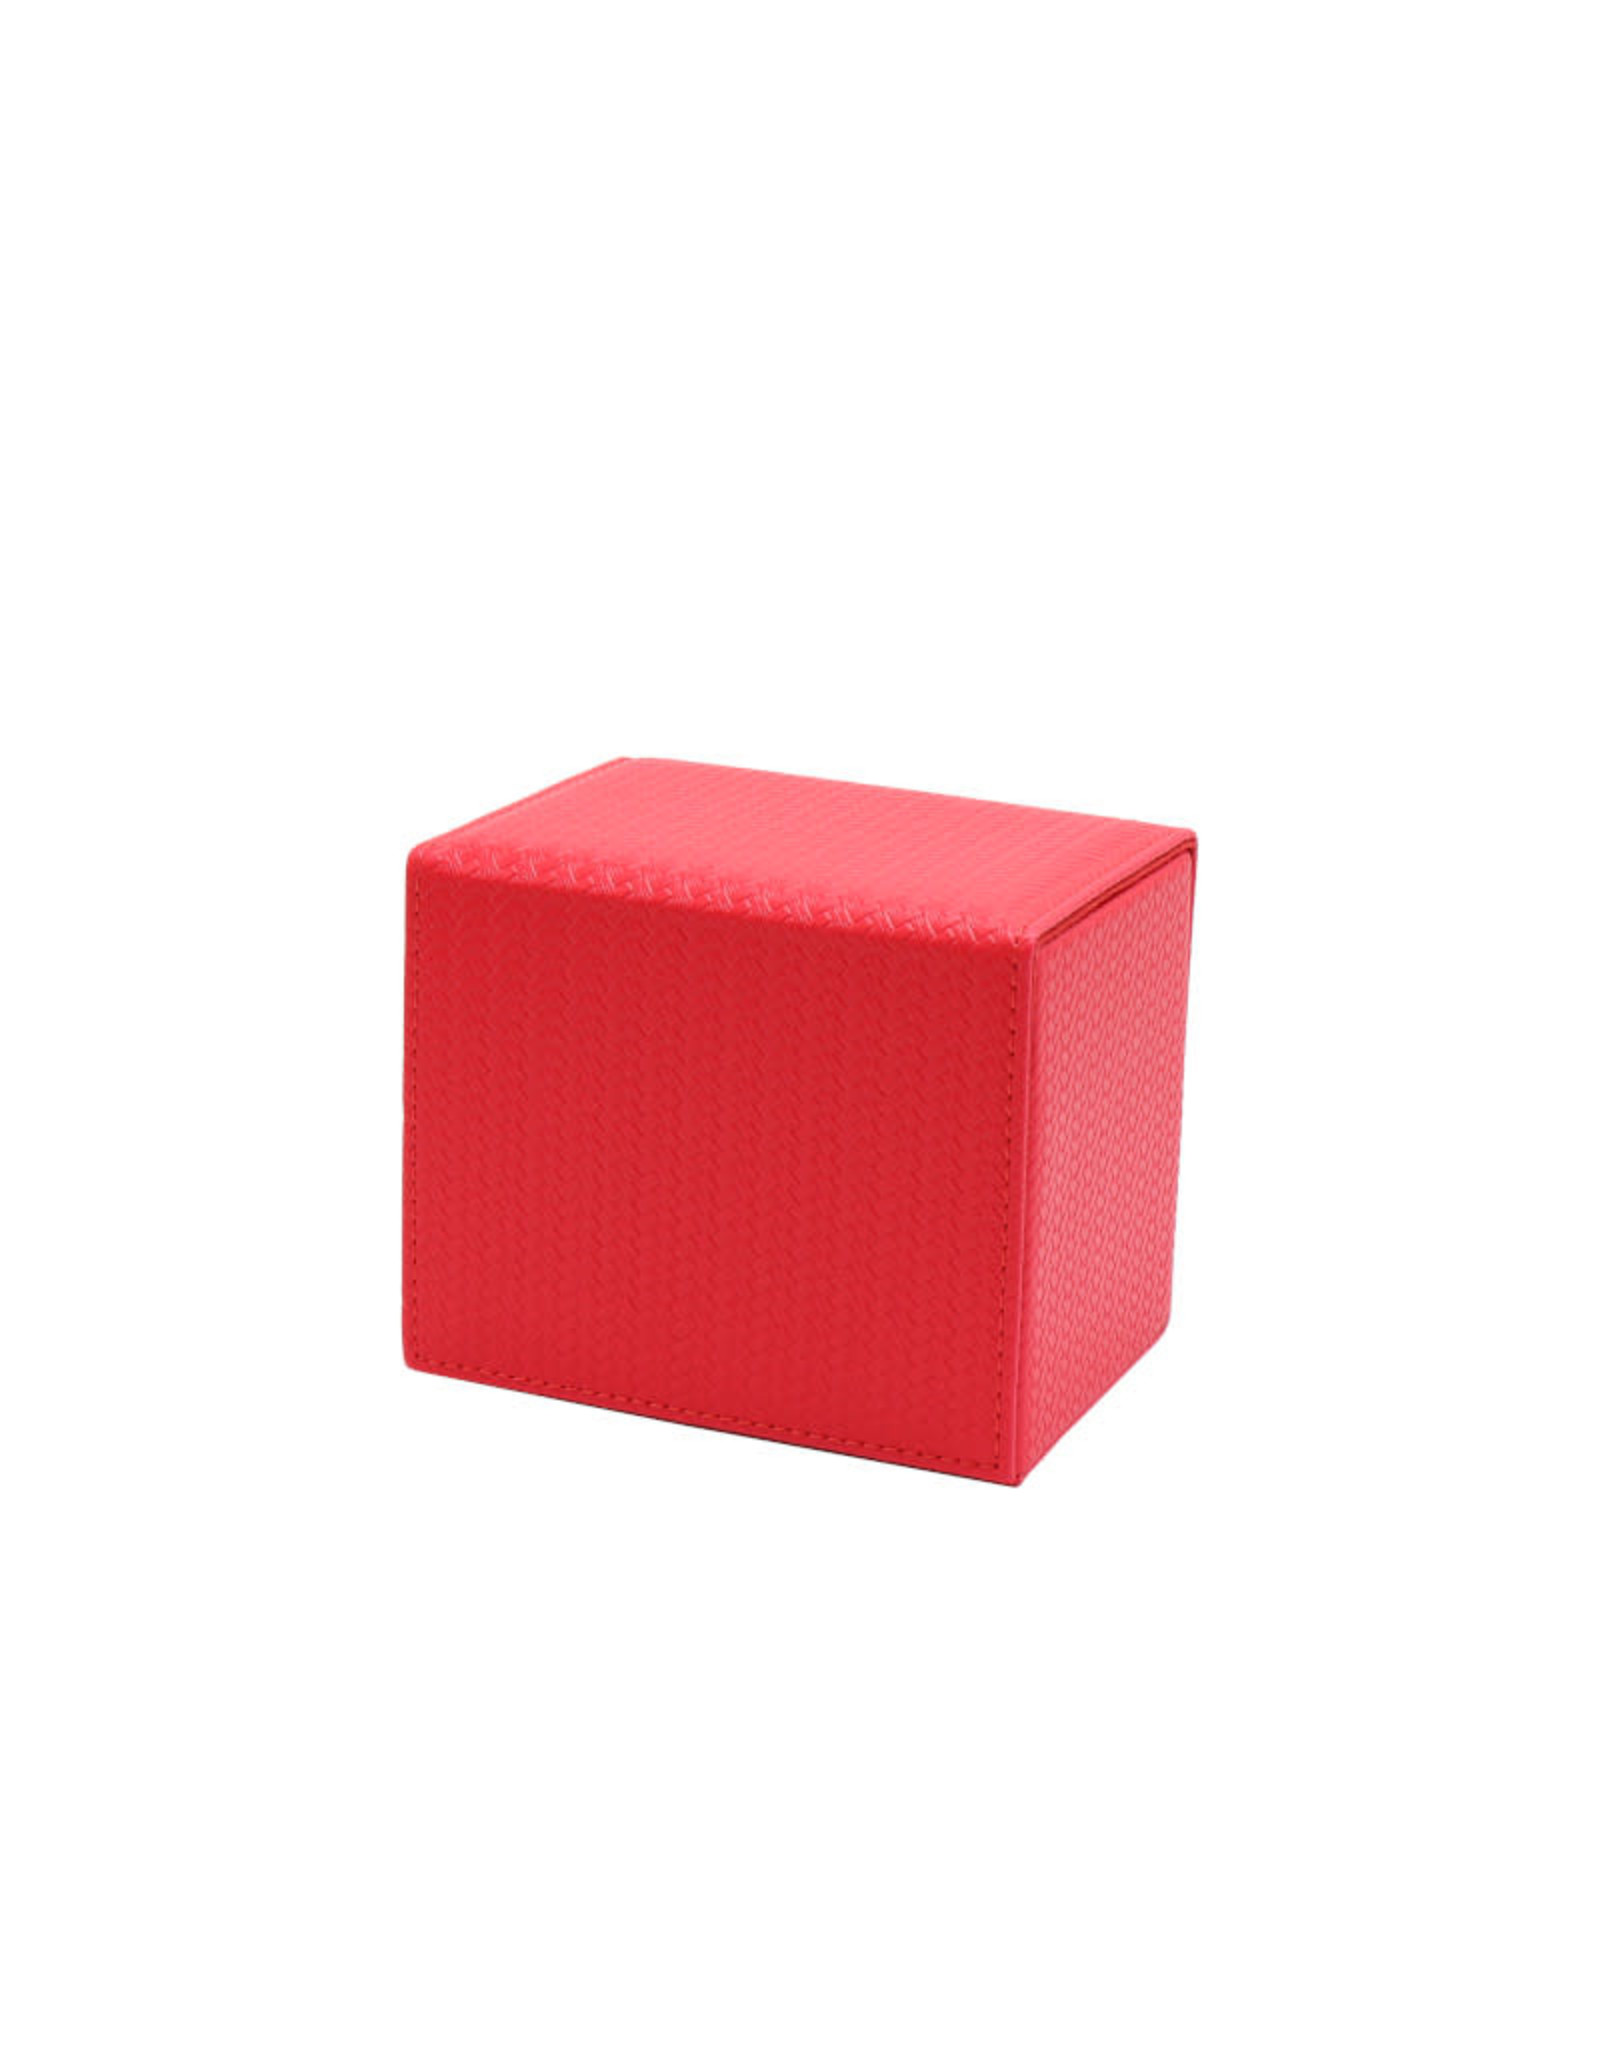 Dex Protection Deck Box: Proline 75+ Red